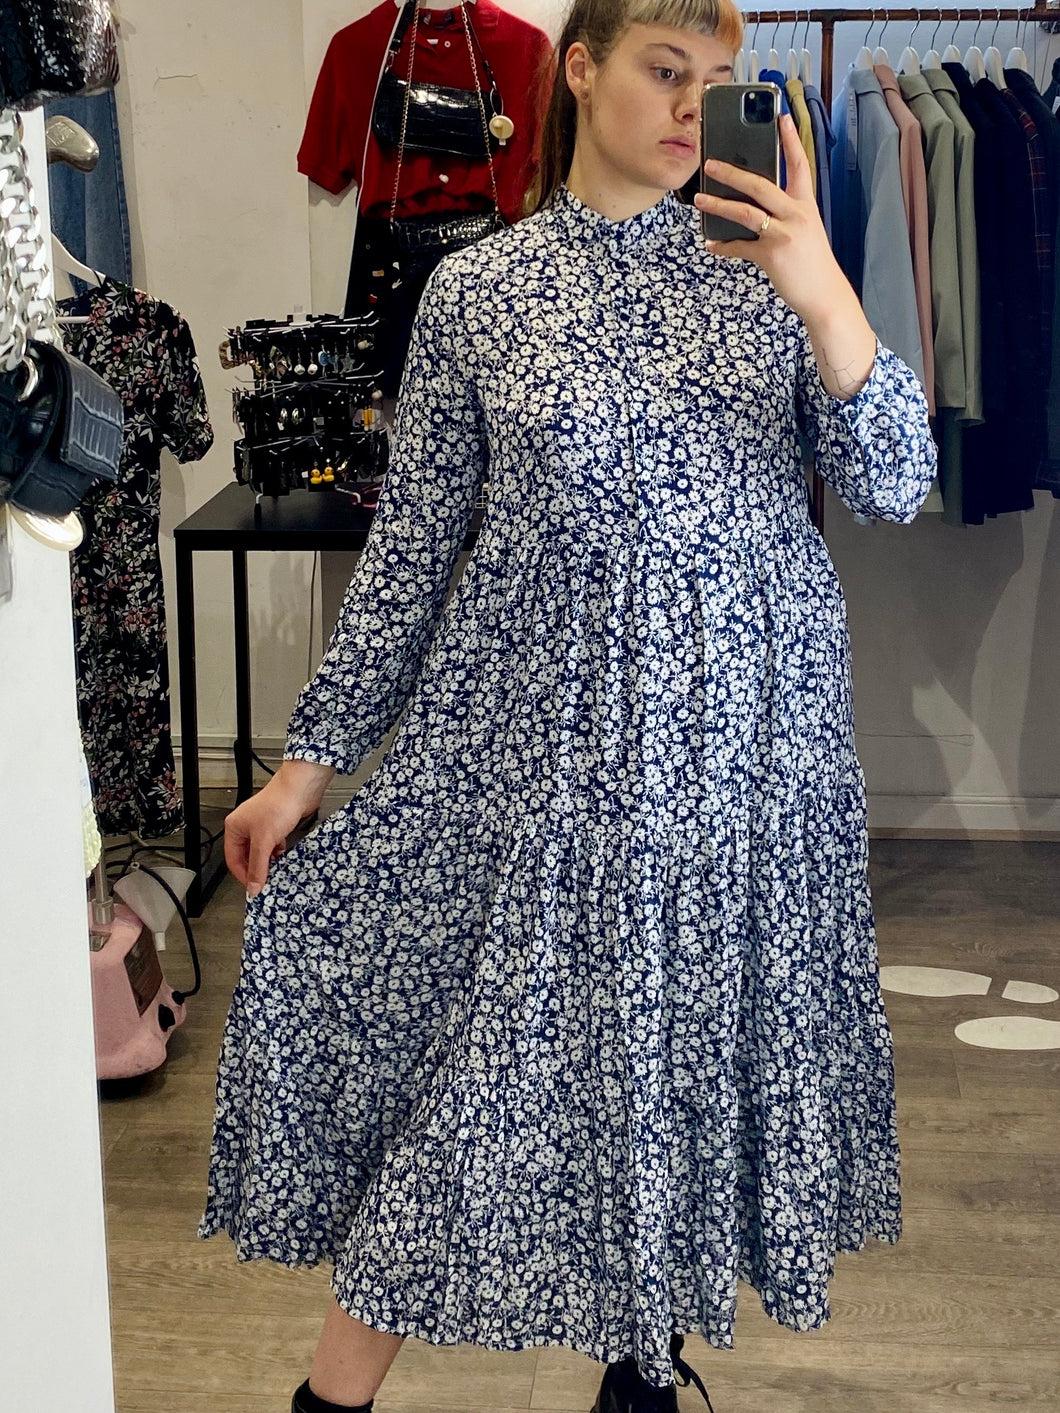 Vintage Inspired Maxi Dress with Floral Print in Dark Blue Sizes S-XL